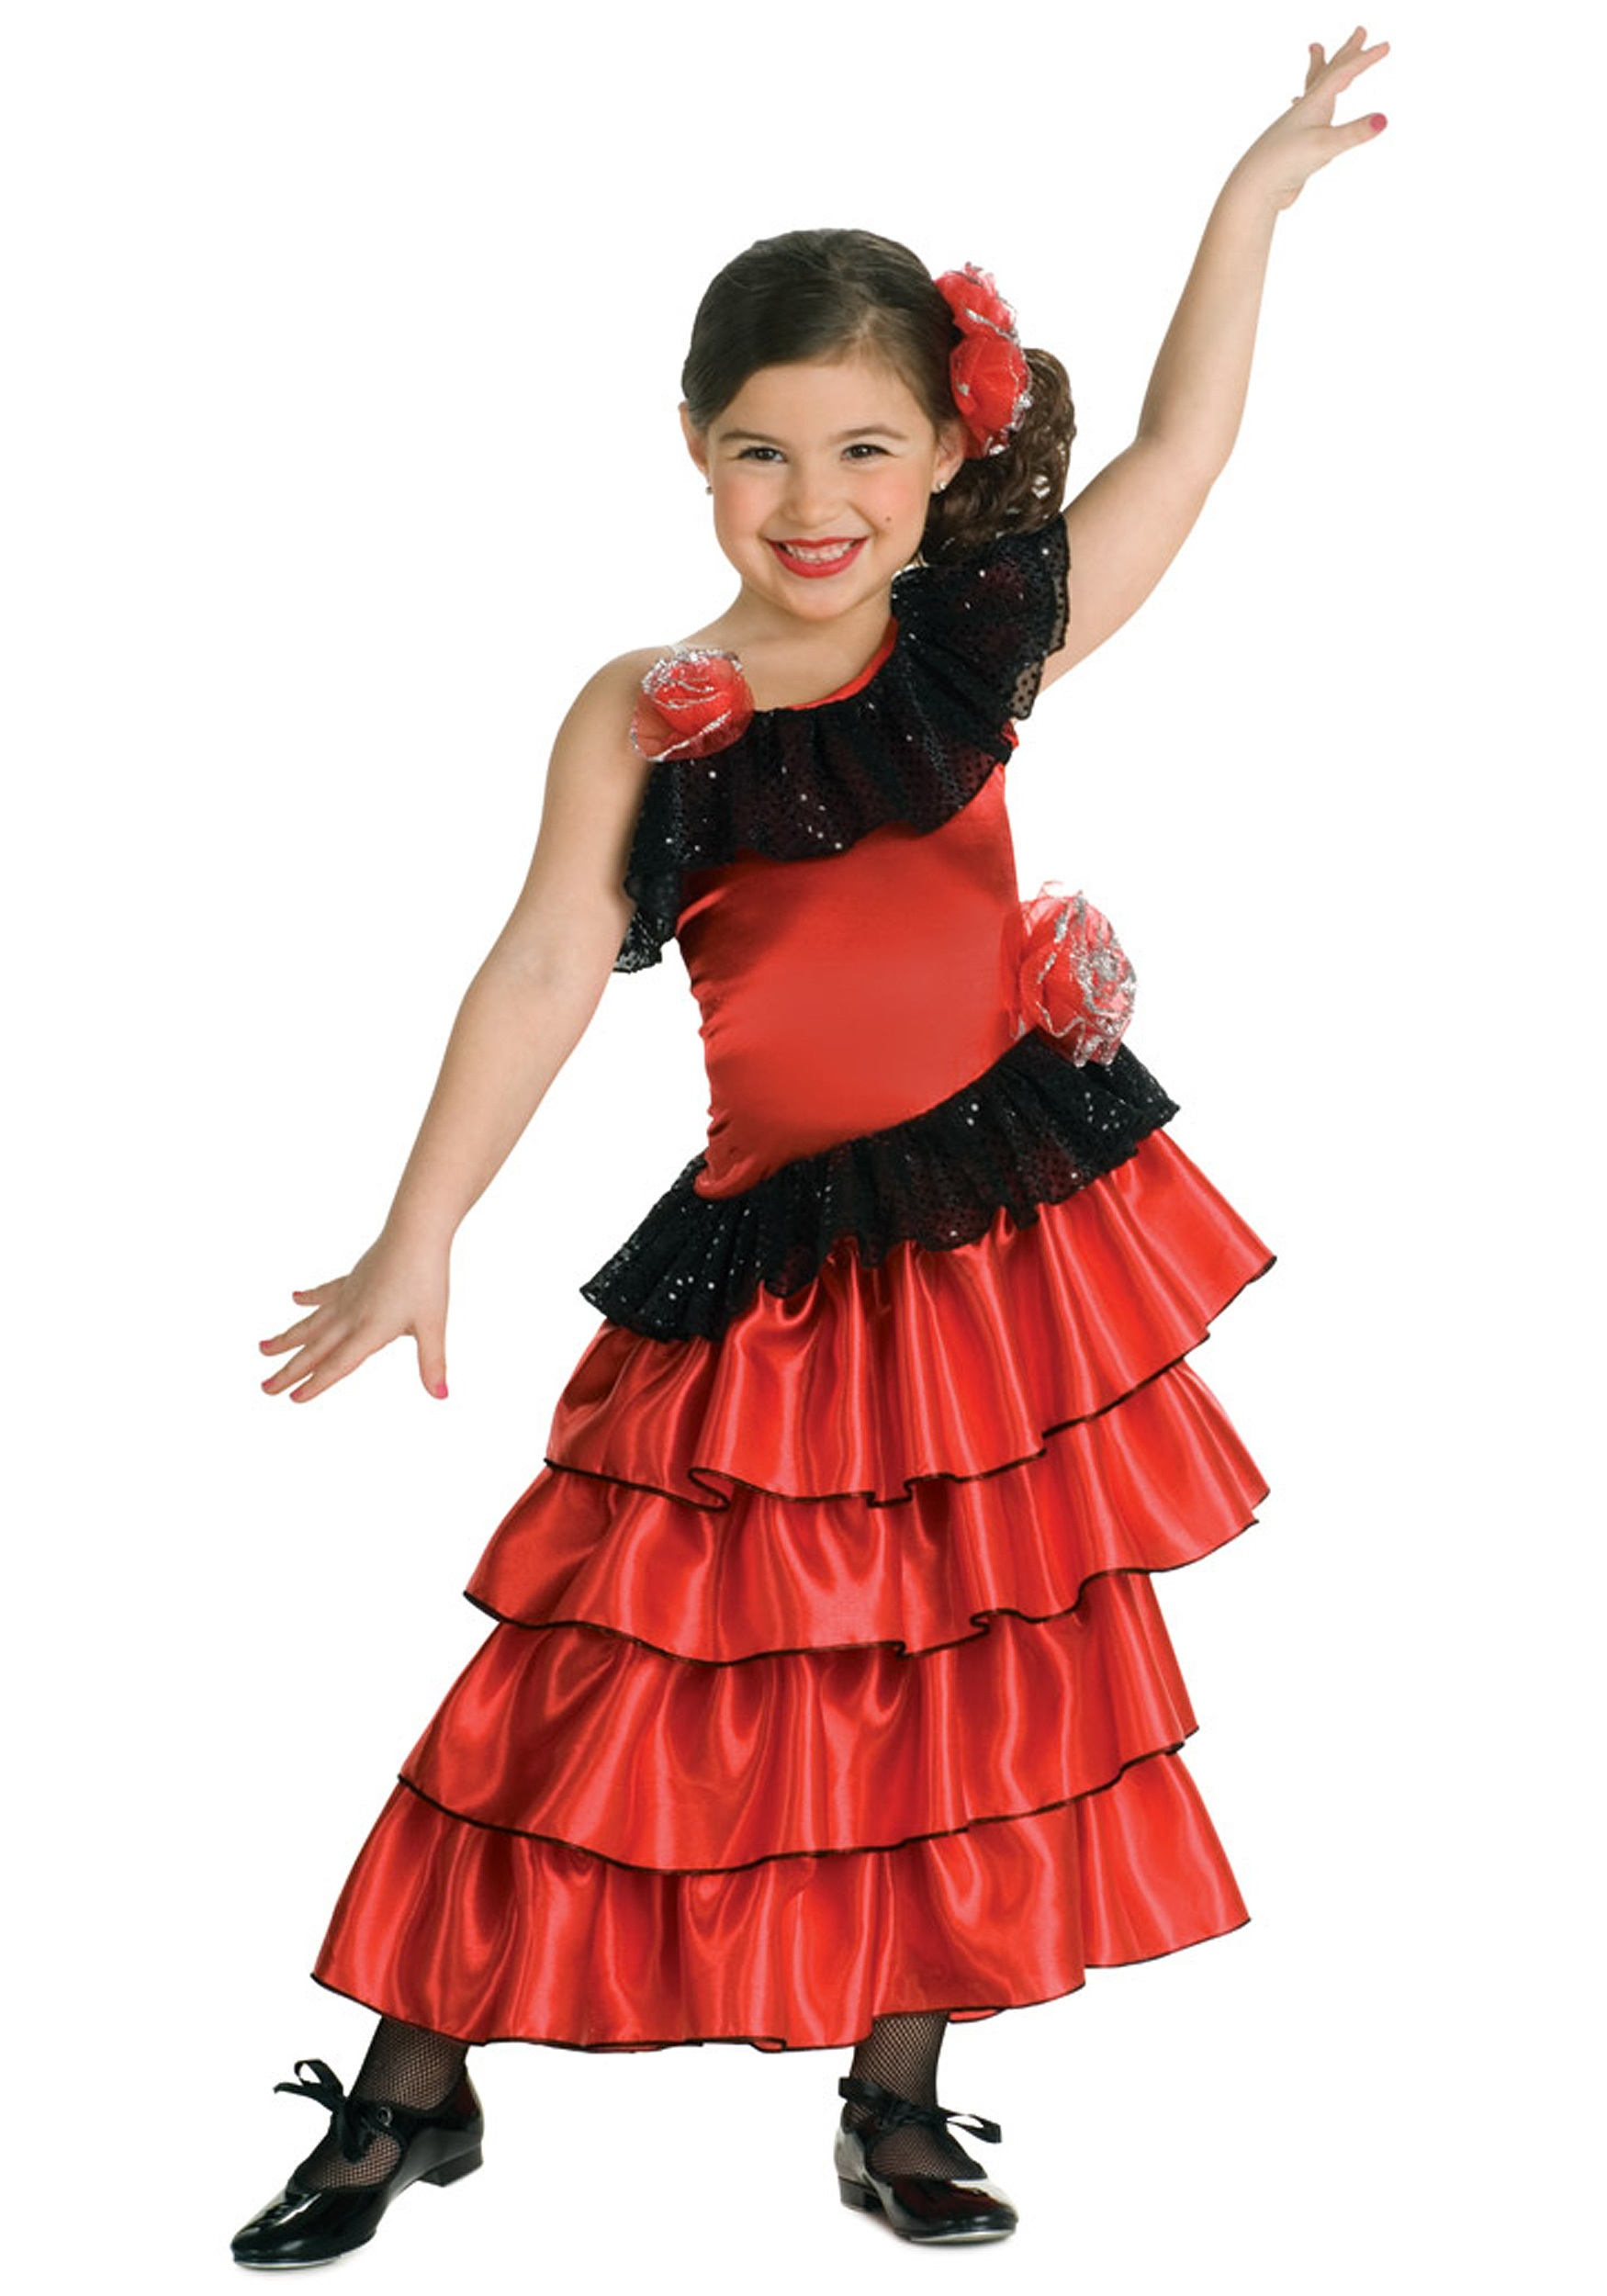 Girls Spanish Flamenco Dancer Costume | eBay